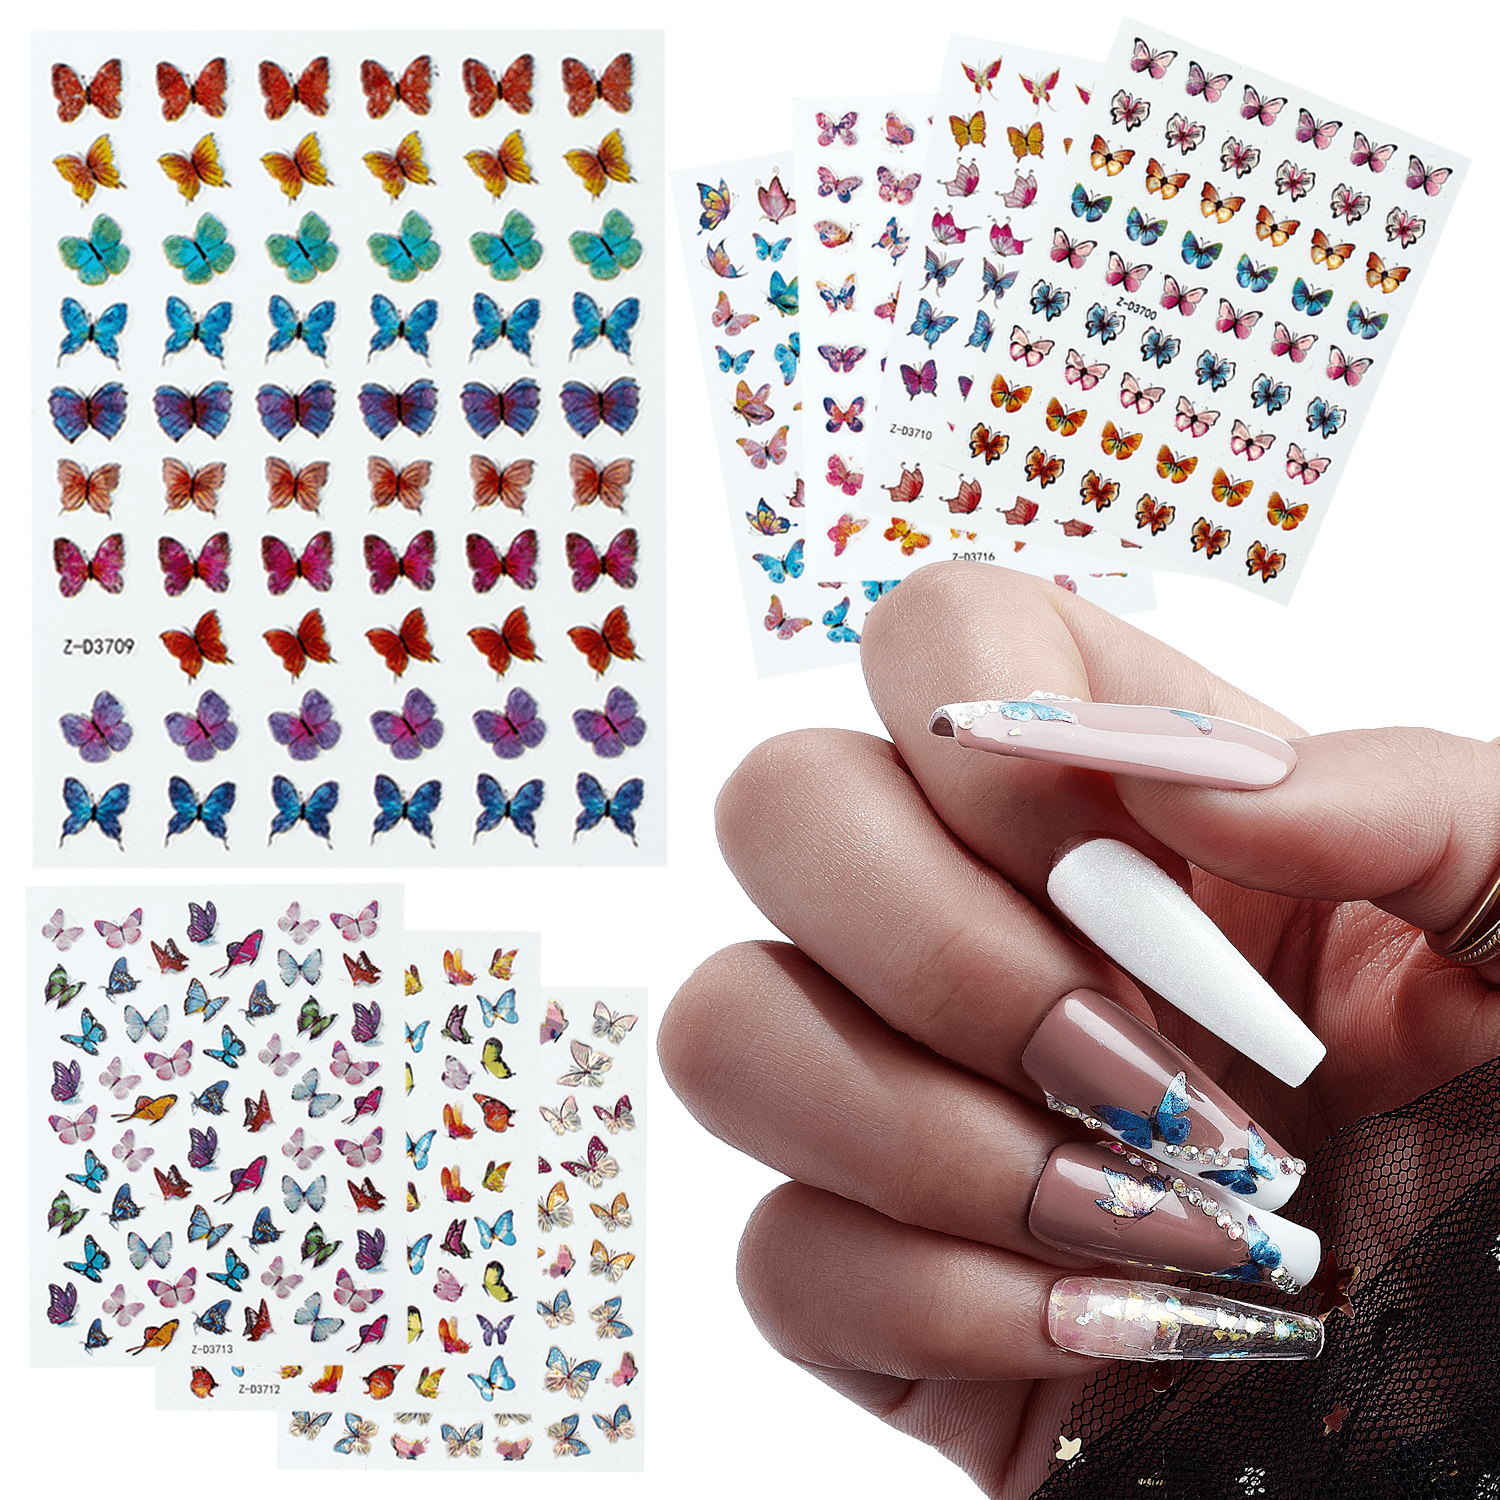 Mariposa Mayhem Nail Decal Pack